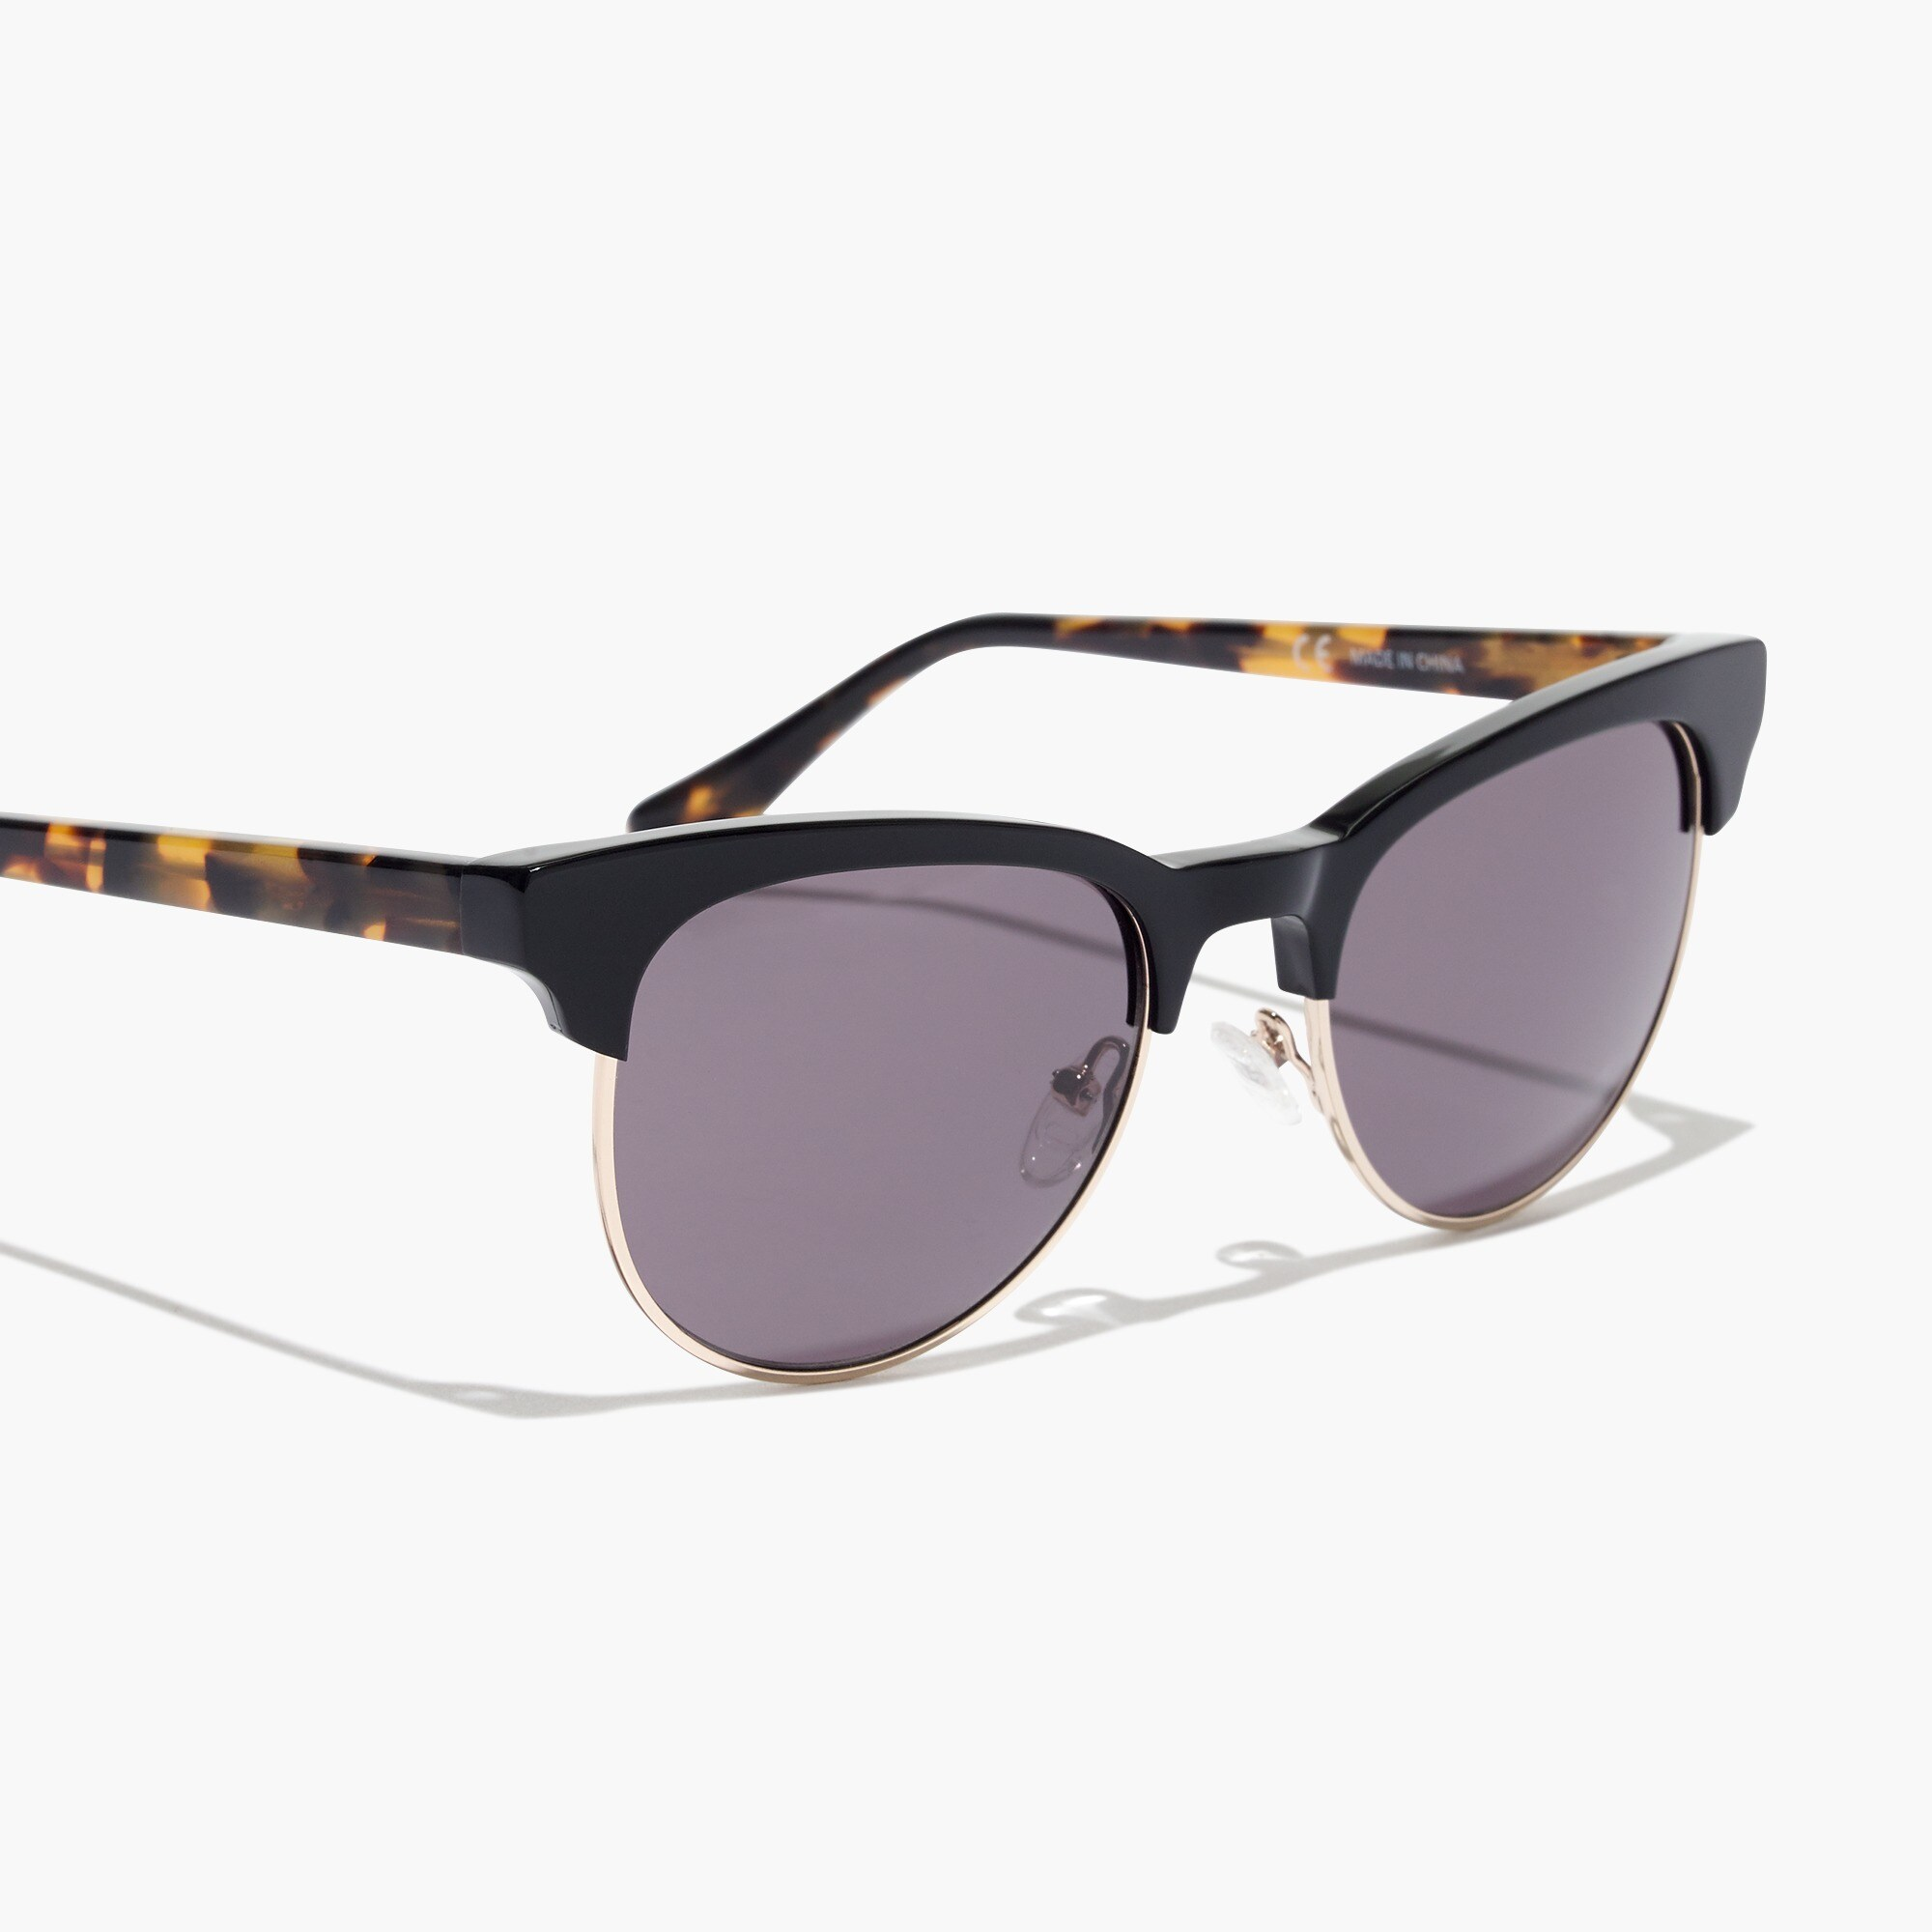 women's boardwalk sunglasses - women's eyewear